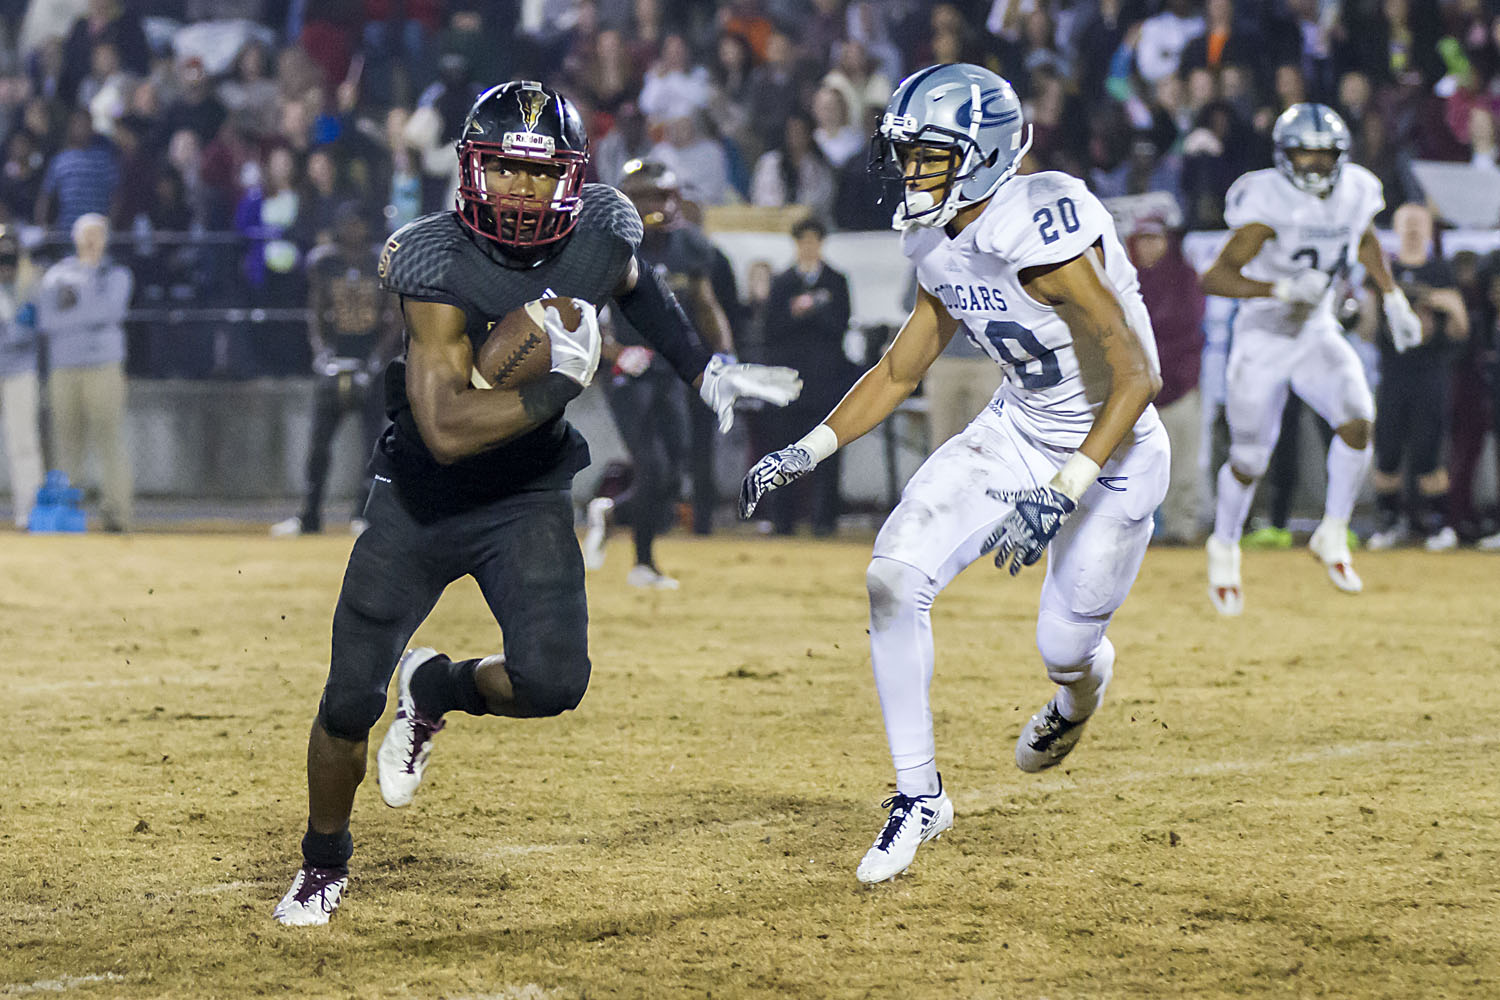 Pinson Valley advances to first state championship game with win over Clay-Chalkville